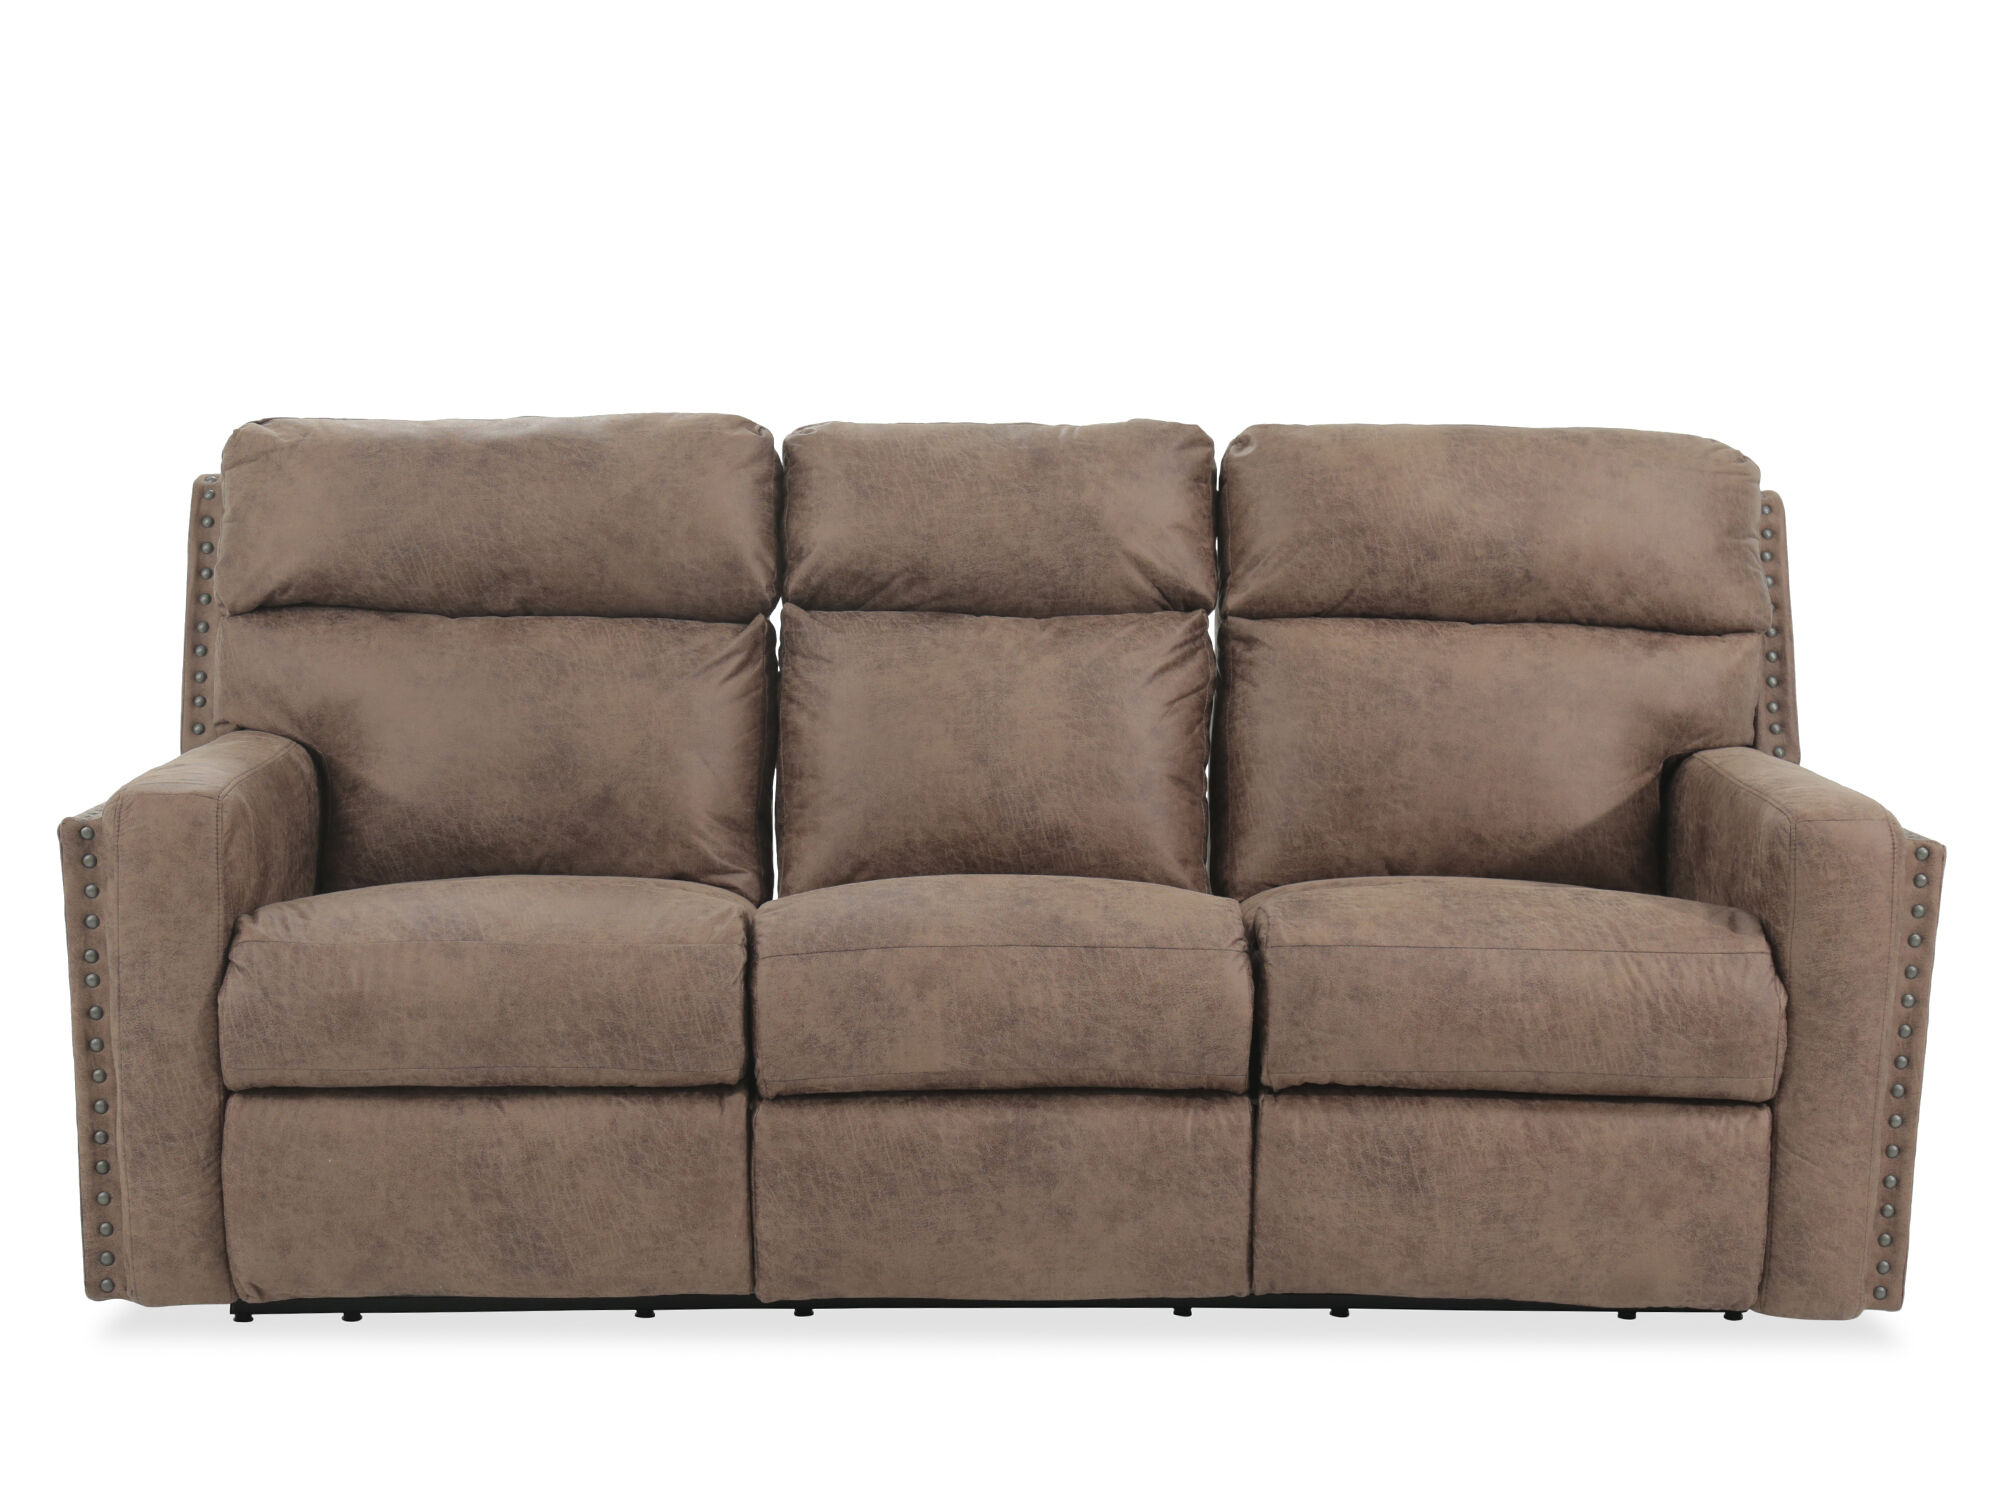 nailhead-accented leather reclining sofa in brown TBD3T5JU